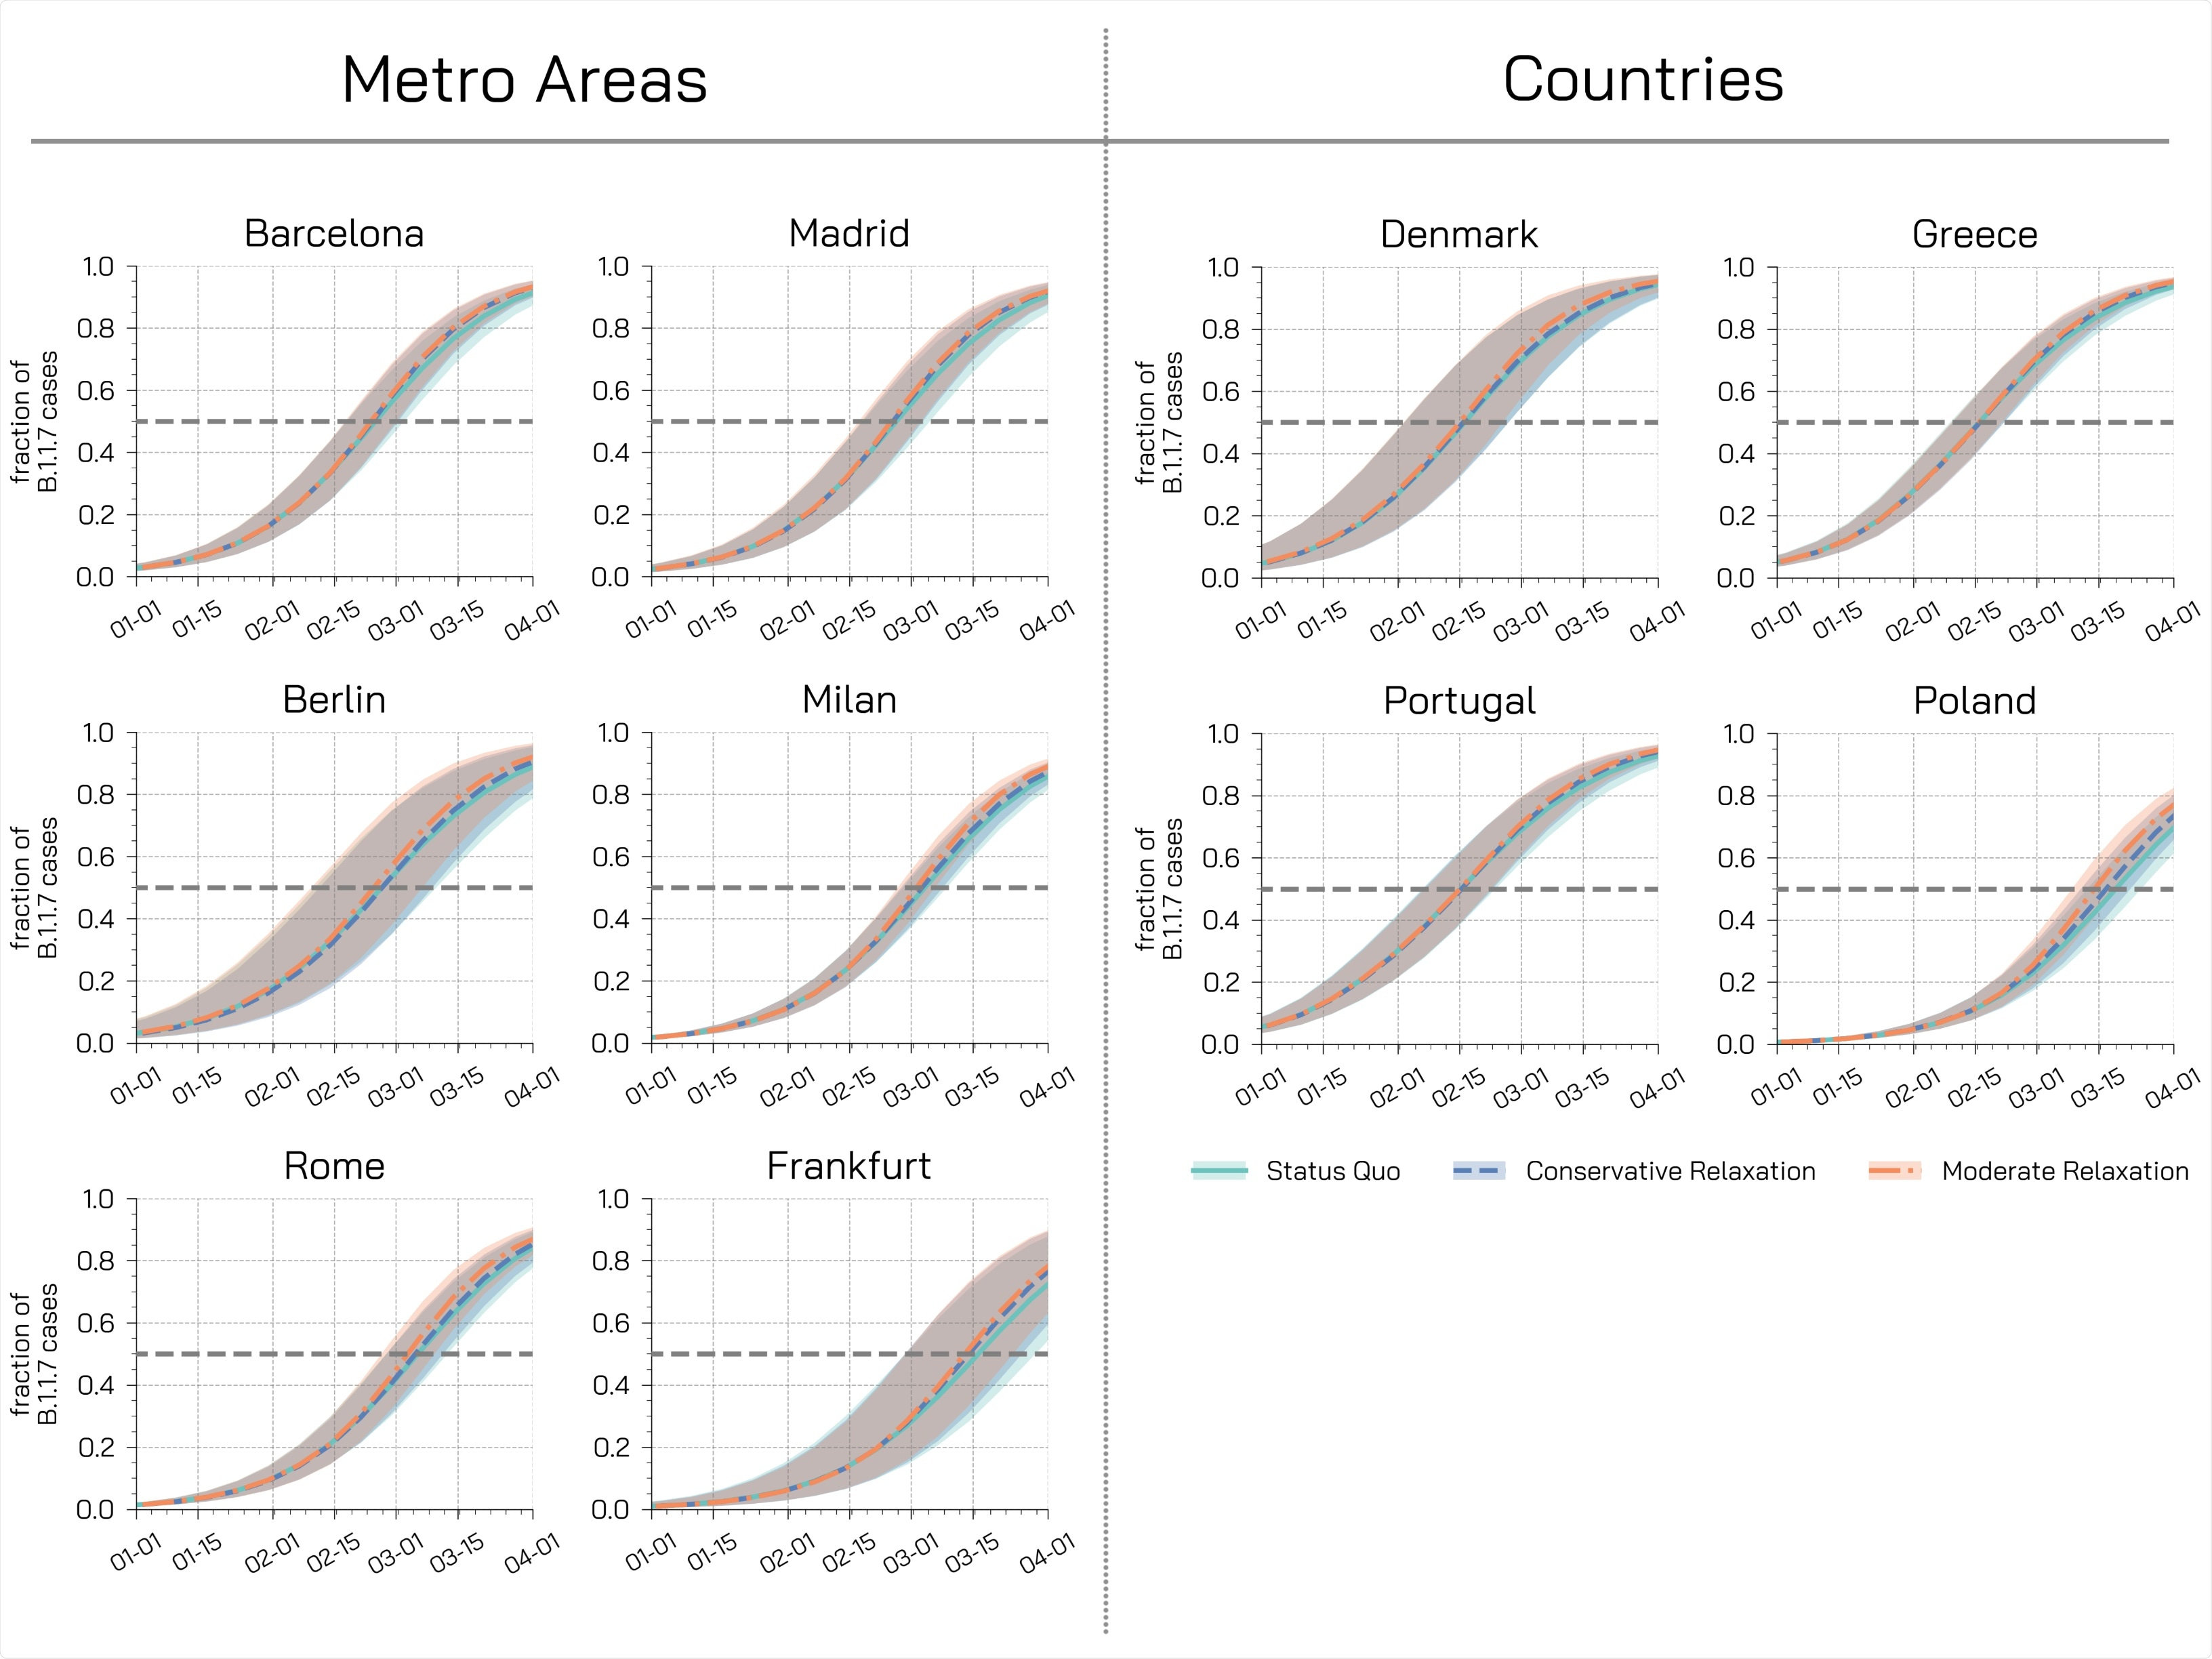 Fraction of new cases attributable to the B.1.1.7 variant. Each plot shows the fraction of new weekly cases attributable to the variant in dierent regions for dierent restrictions scenarios under the assumption of a 50% increase in transmissibility. Dashed horizontal lines represent the dominance threshold of 50% of new cases caused by the B.1.1.7 variant. The shaded areas represent the 50% CI.